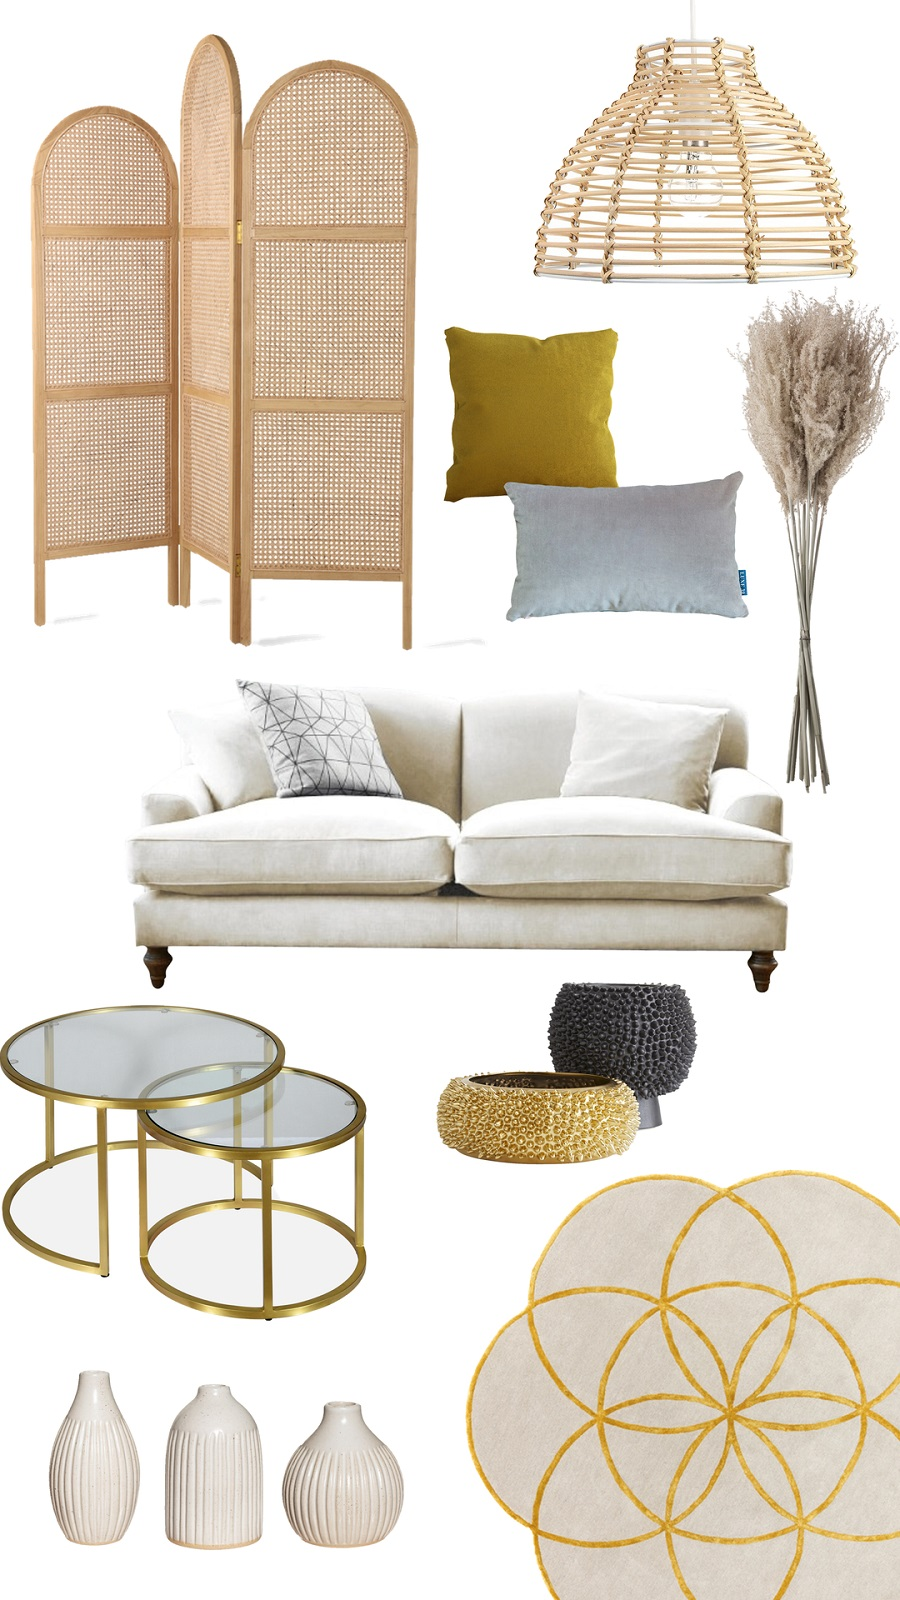 Contemporary Curves in the Sitting Room - Get The Look